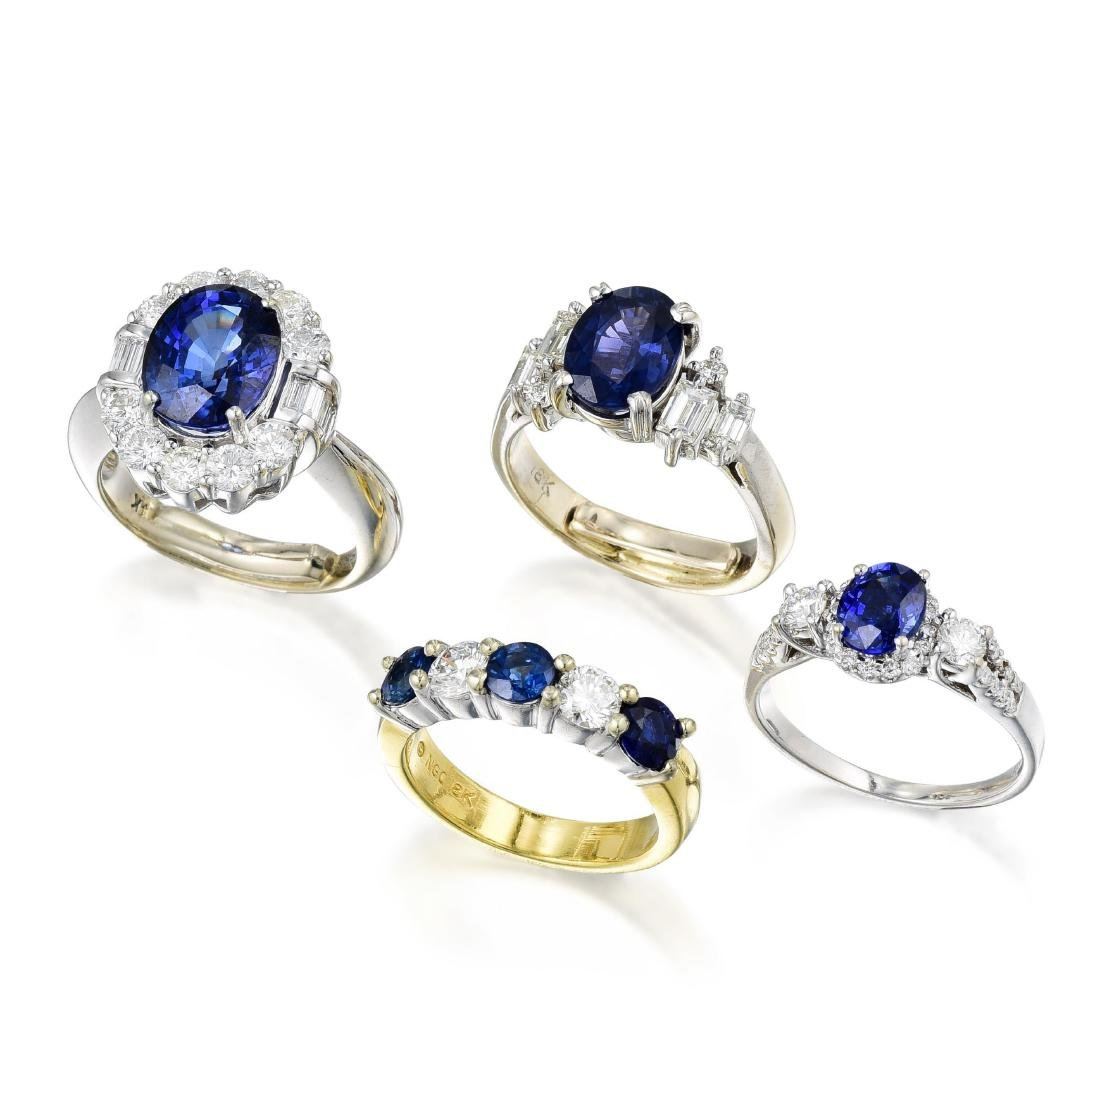 A Group of Sapphire and Diamond Rings